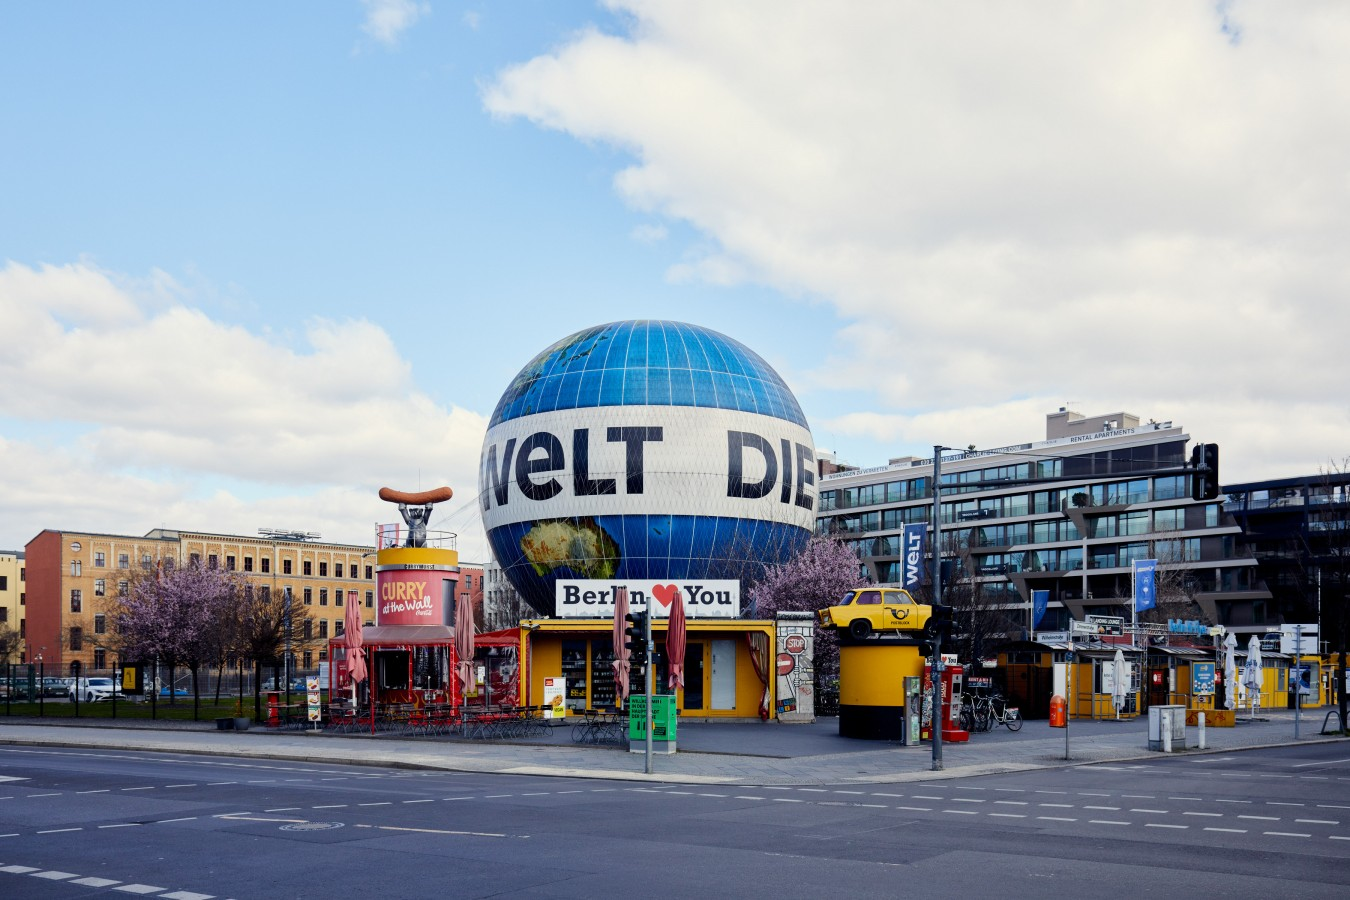 Strange Days in Berlin by NIKOLAUS BRADE.